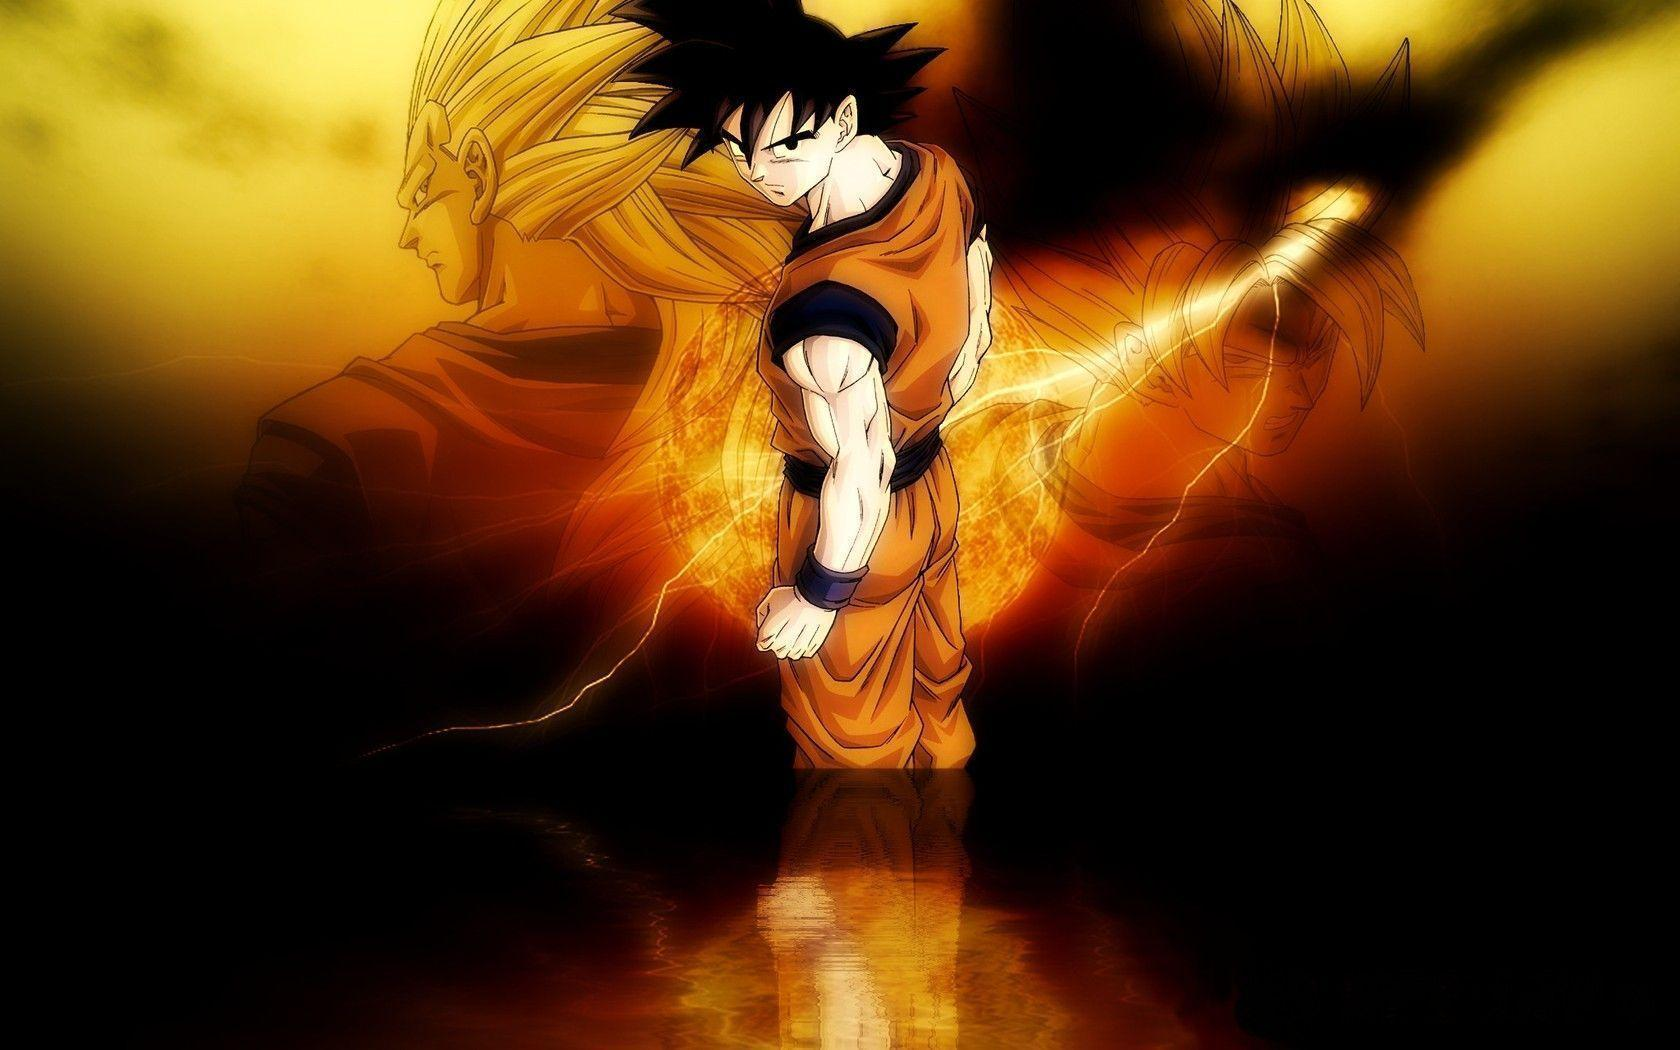 Goku Wallpapers - Wallpaper Cave